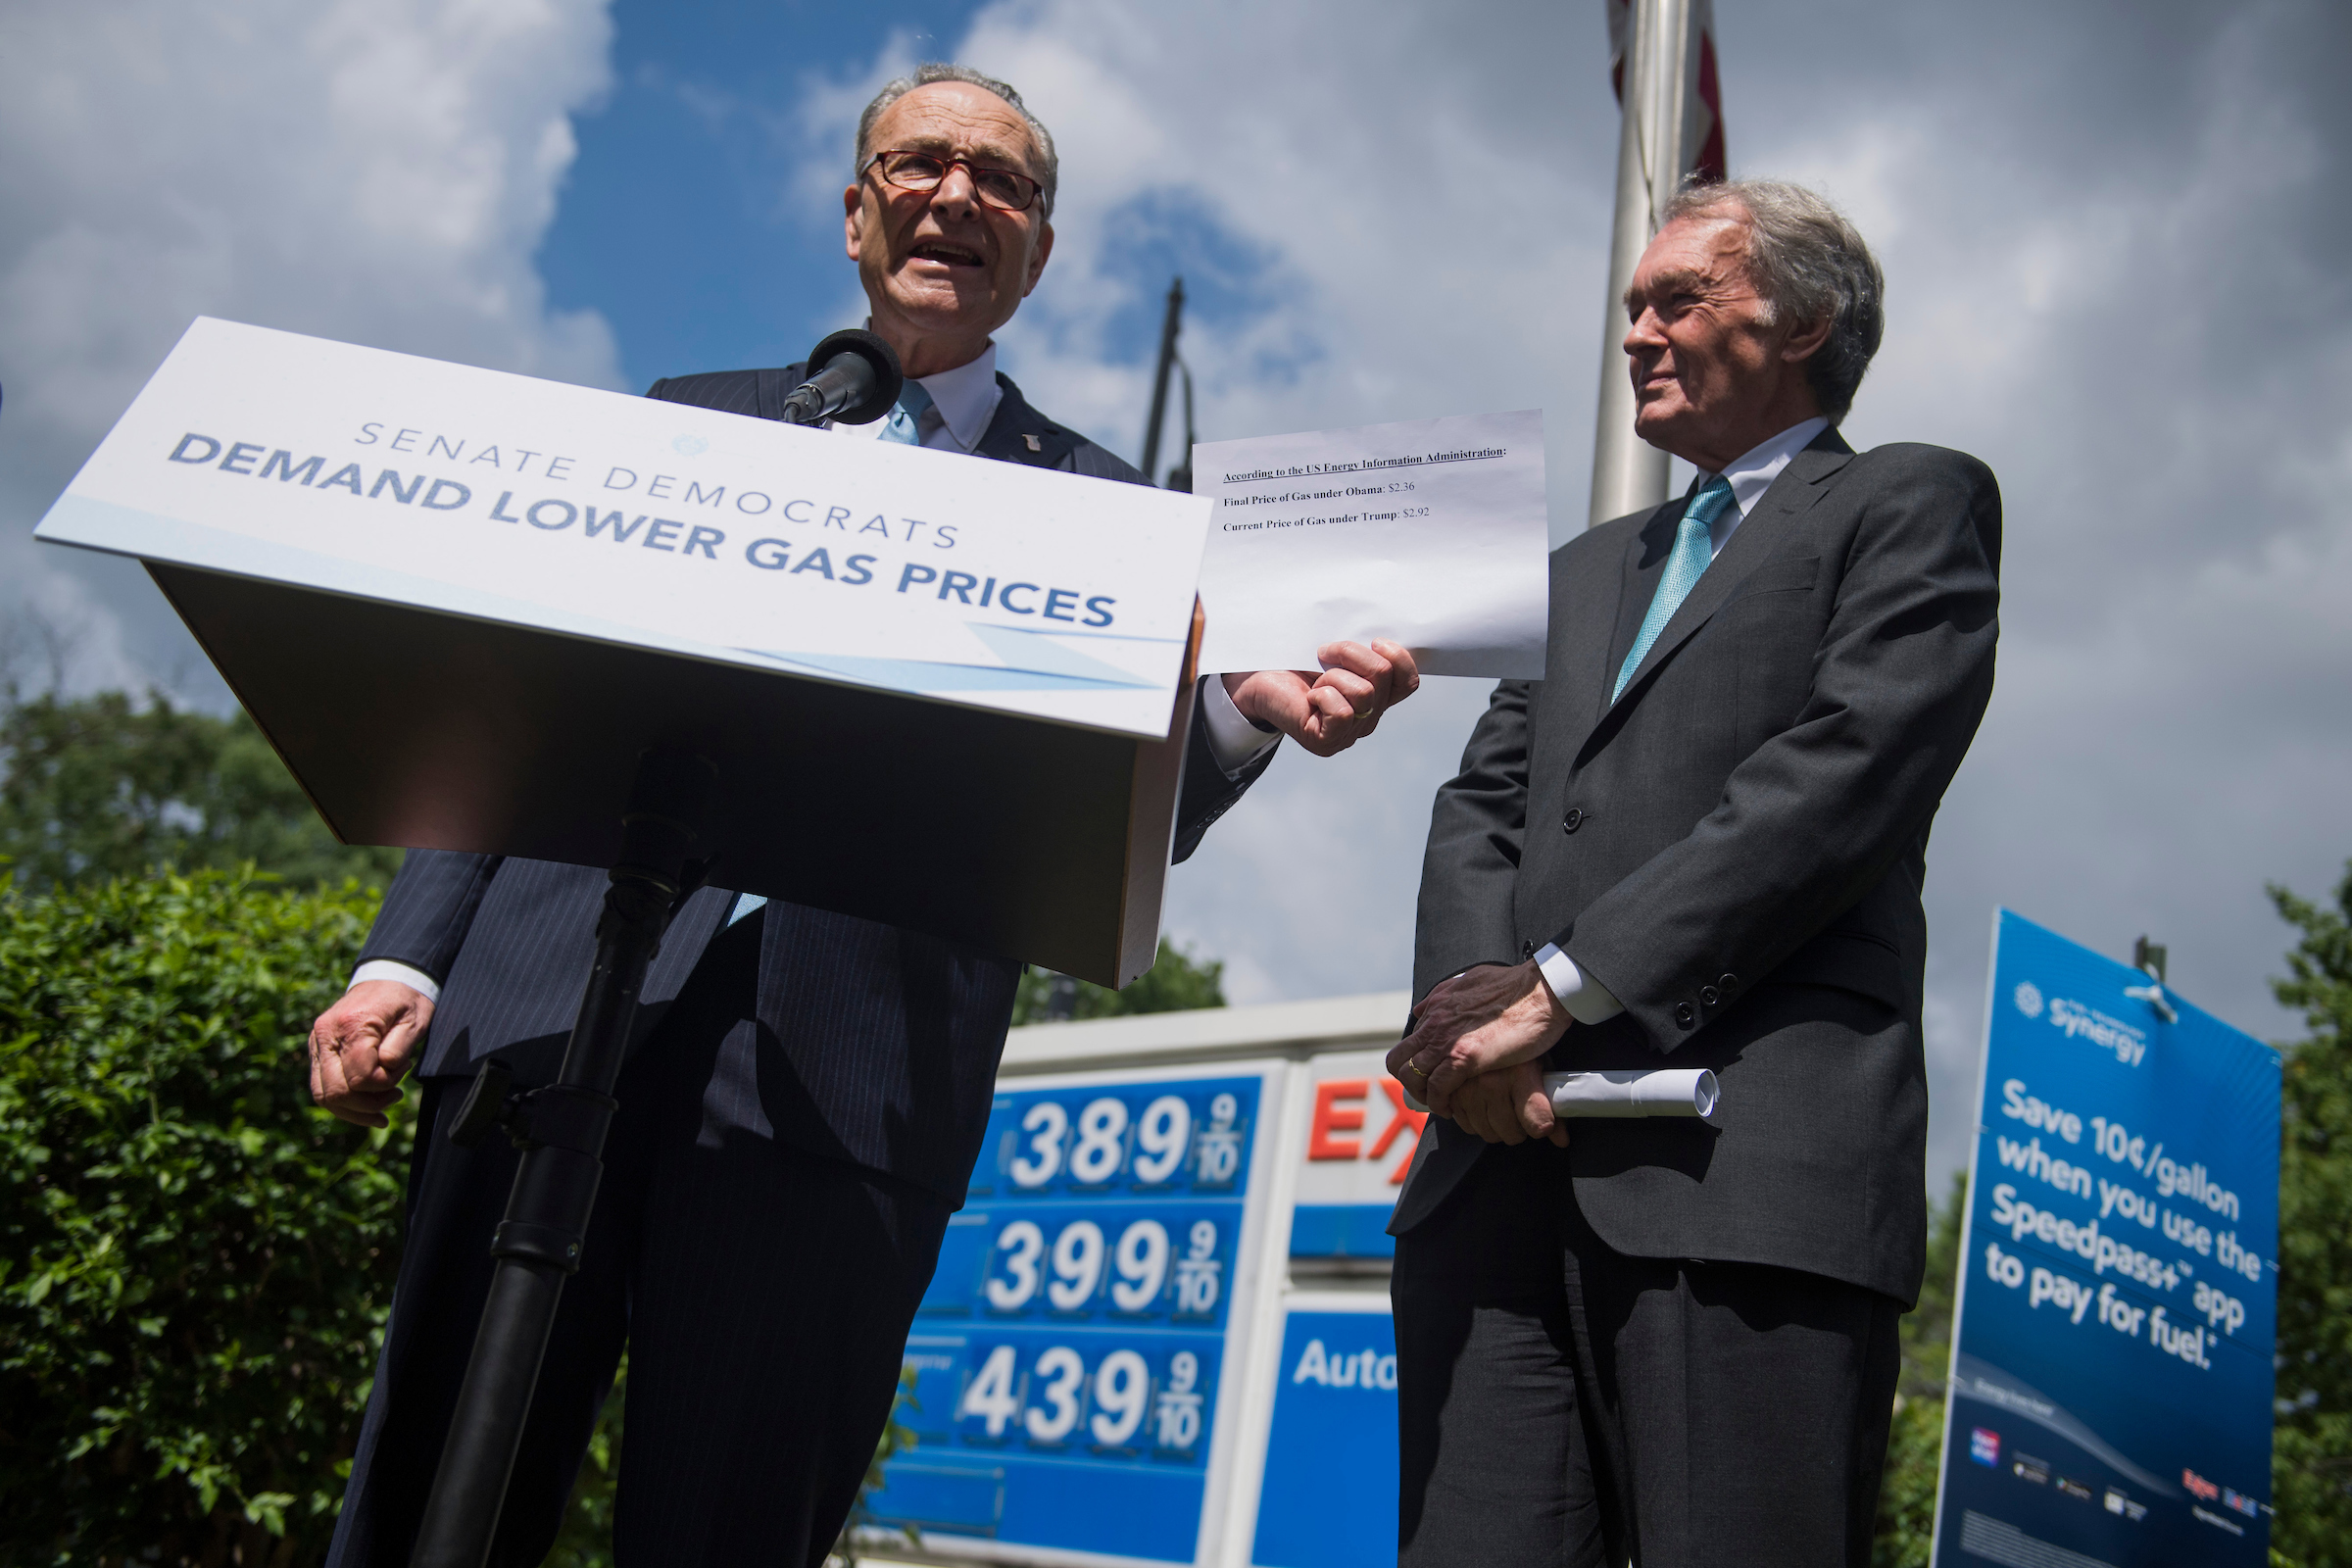 UNITED STATES - MAY 23: Senate Minority Leader Charles Schumer, D-N.Y., left, and Sen. Ed Markey, D-Mass., conduct a news conference at the Exxon gas station at Massachusetts Avenue and 2nd Street, NE, to urge President Trump to take action to lower gas prices on May 23, 2018. Schumer holds a statistic indicating that gas prices were lower under President Obama. (Photo By Tom Williams/CQ Roll Call)